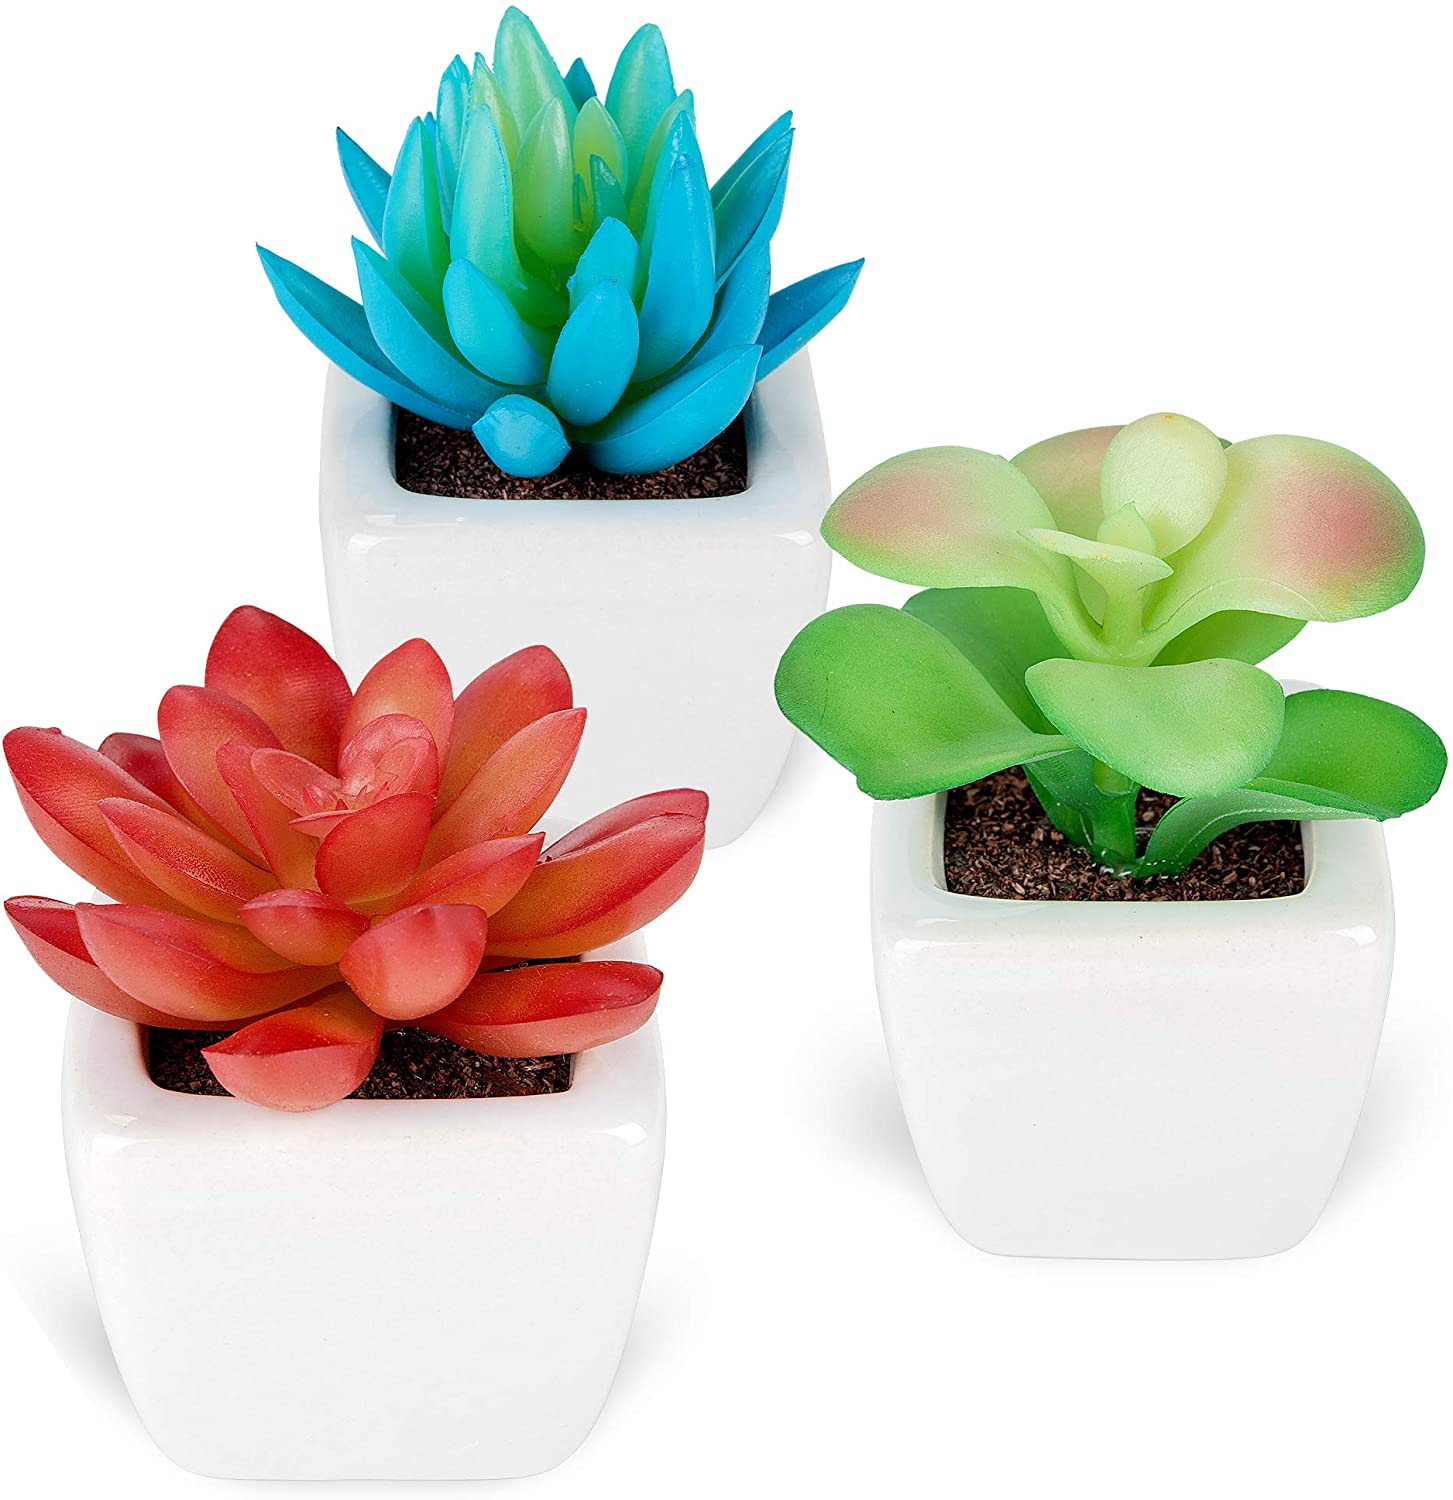 Fake Plants - Set of 3 Succulents Plants Artificial in Small White Mini Ceramic Planters - Potted Decor Plants for Home, Office, Bathroom, Bedroom, Desk, Bookshelf